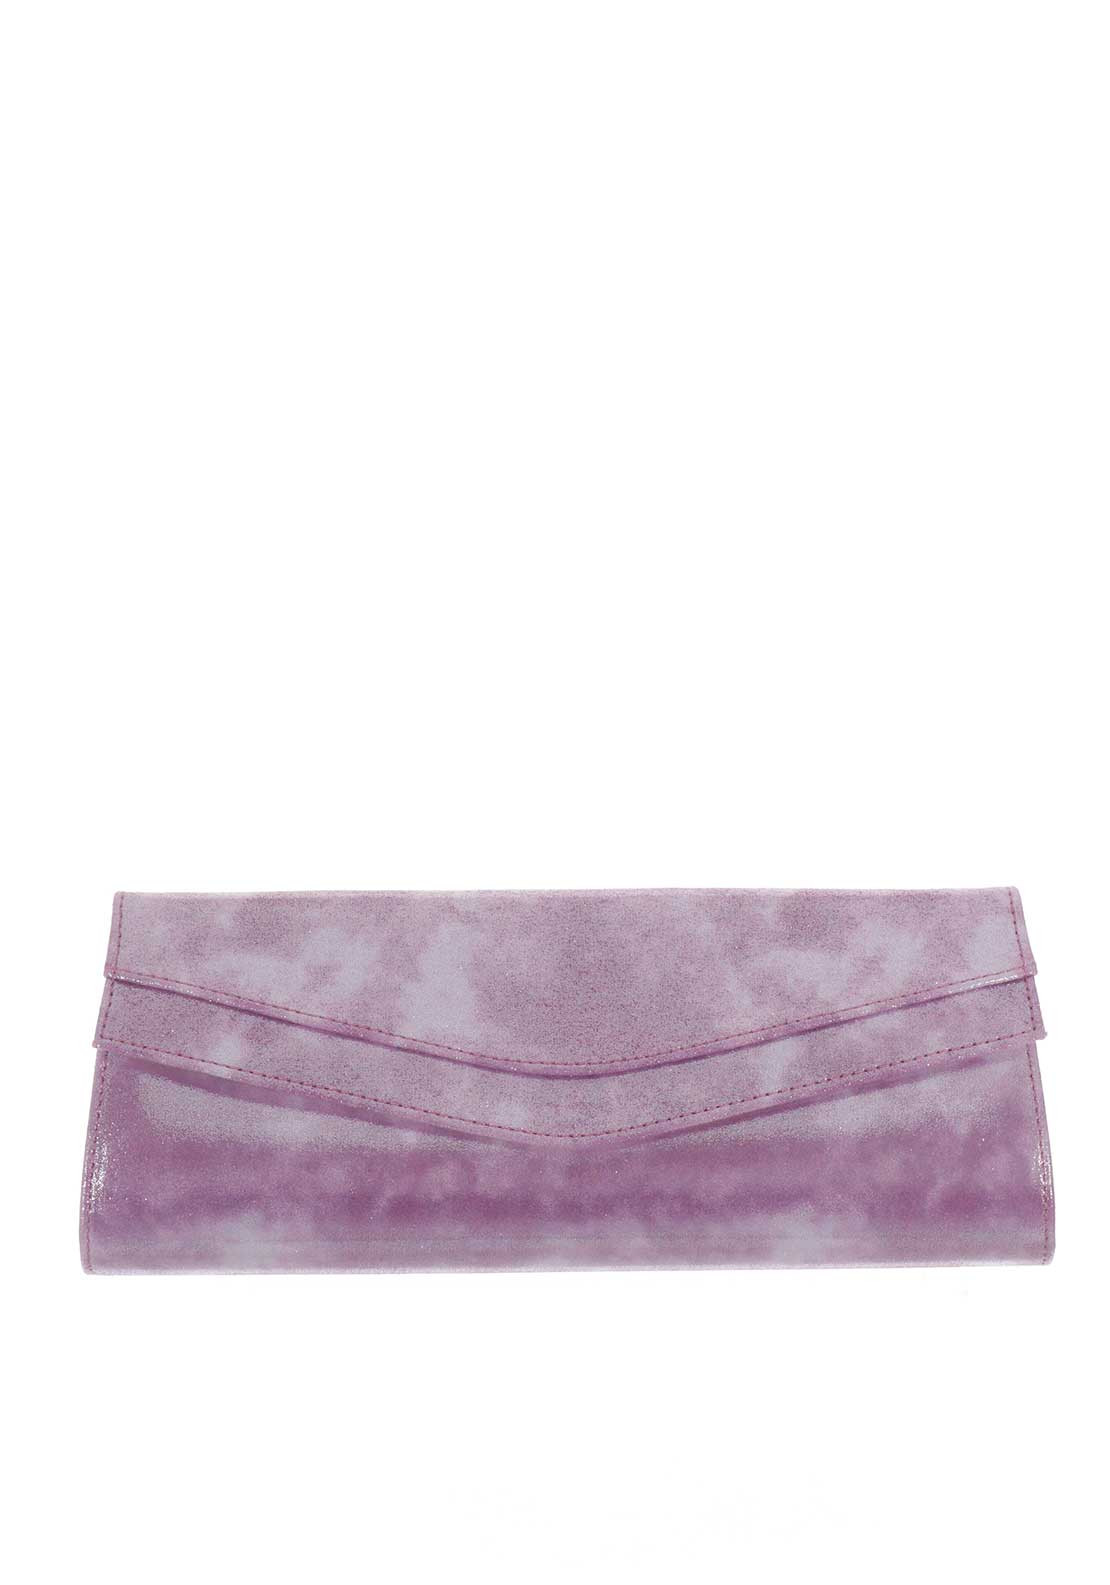 Ana Roman Shimmer Clutch Bag, Purple